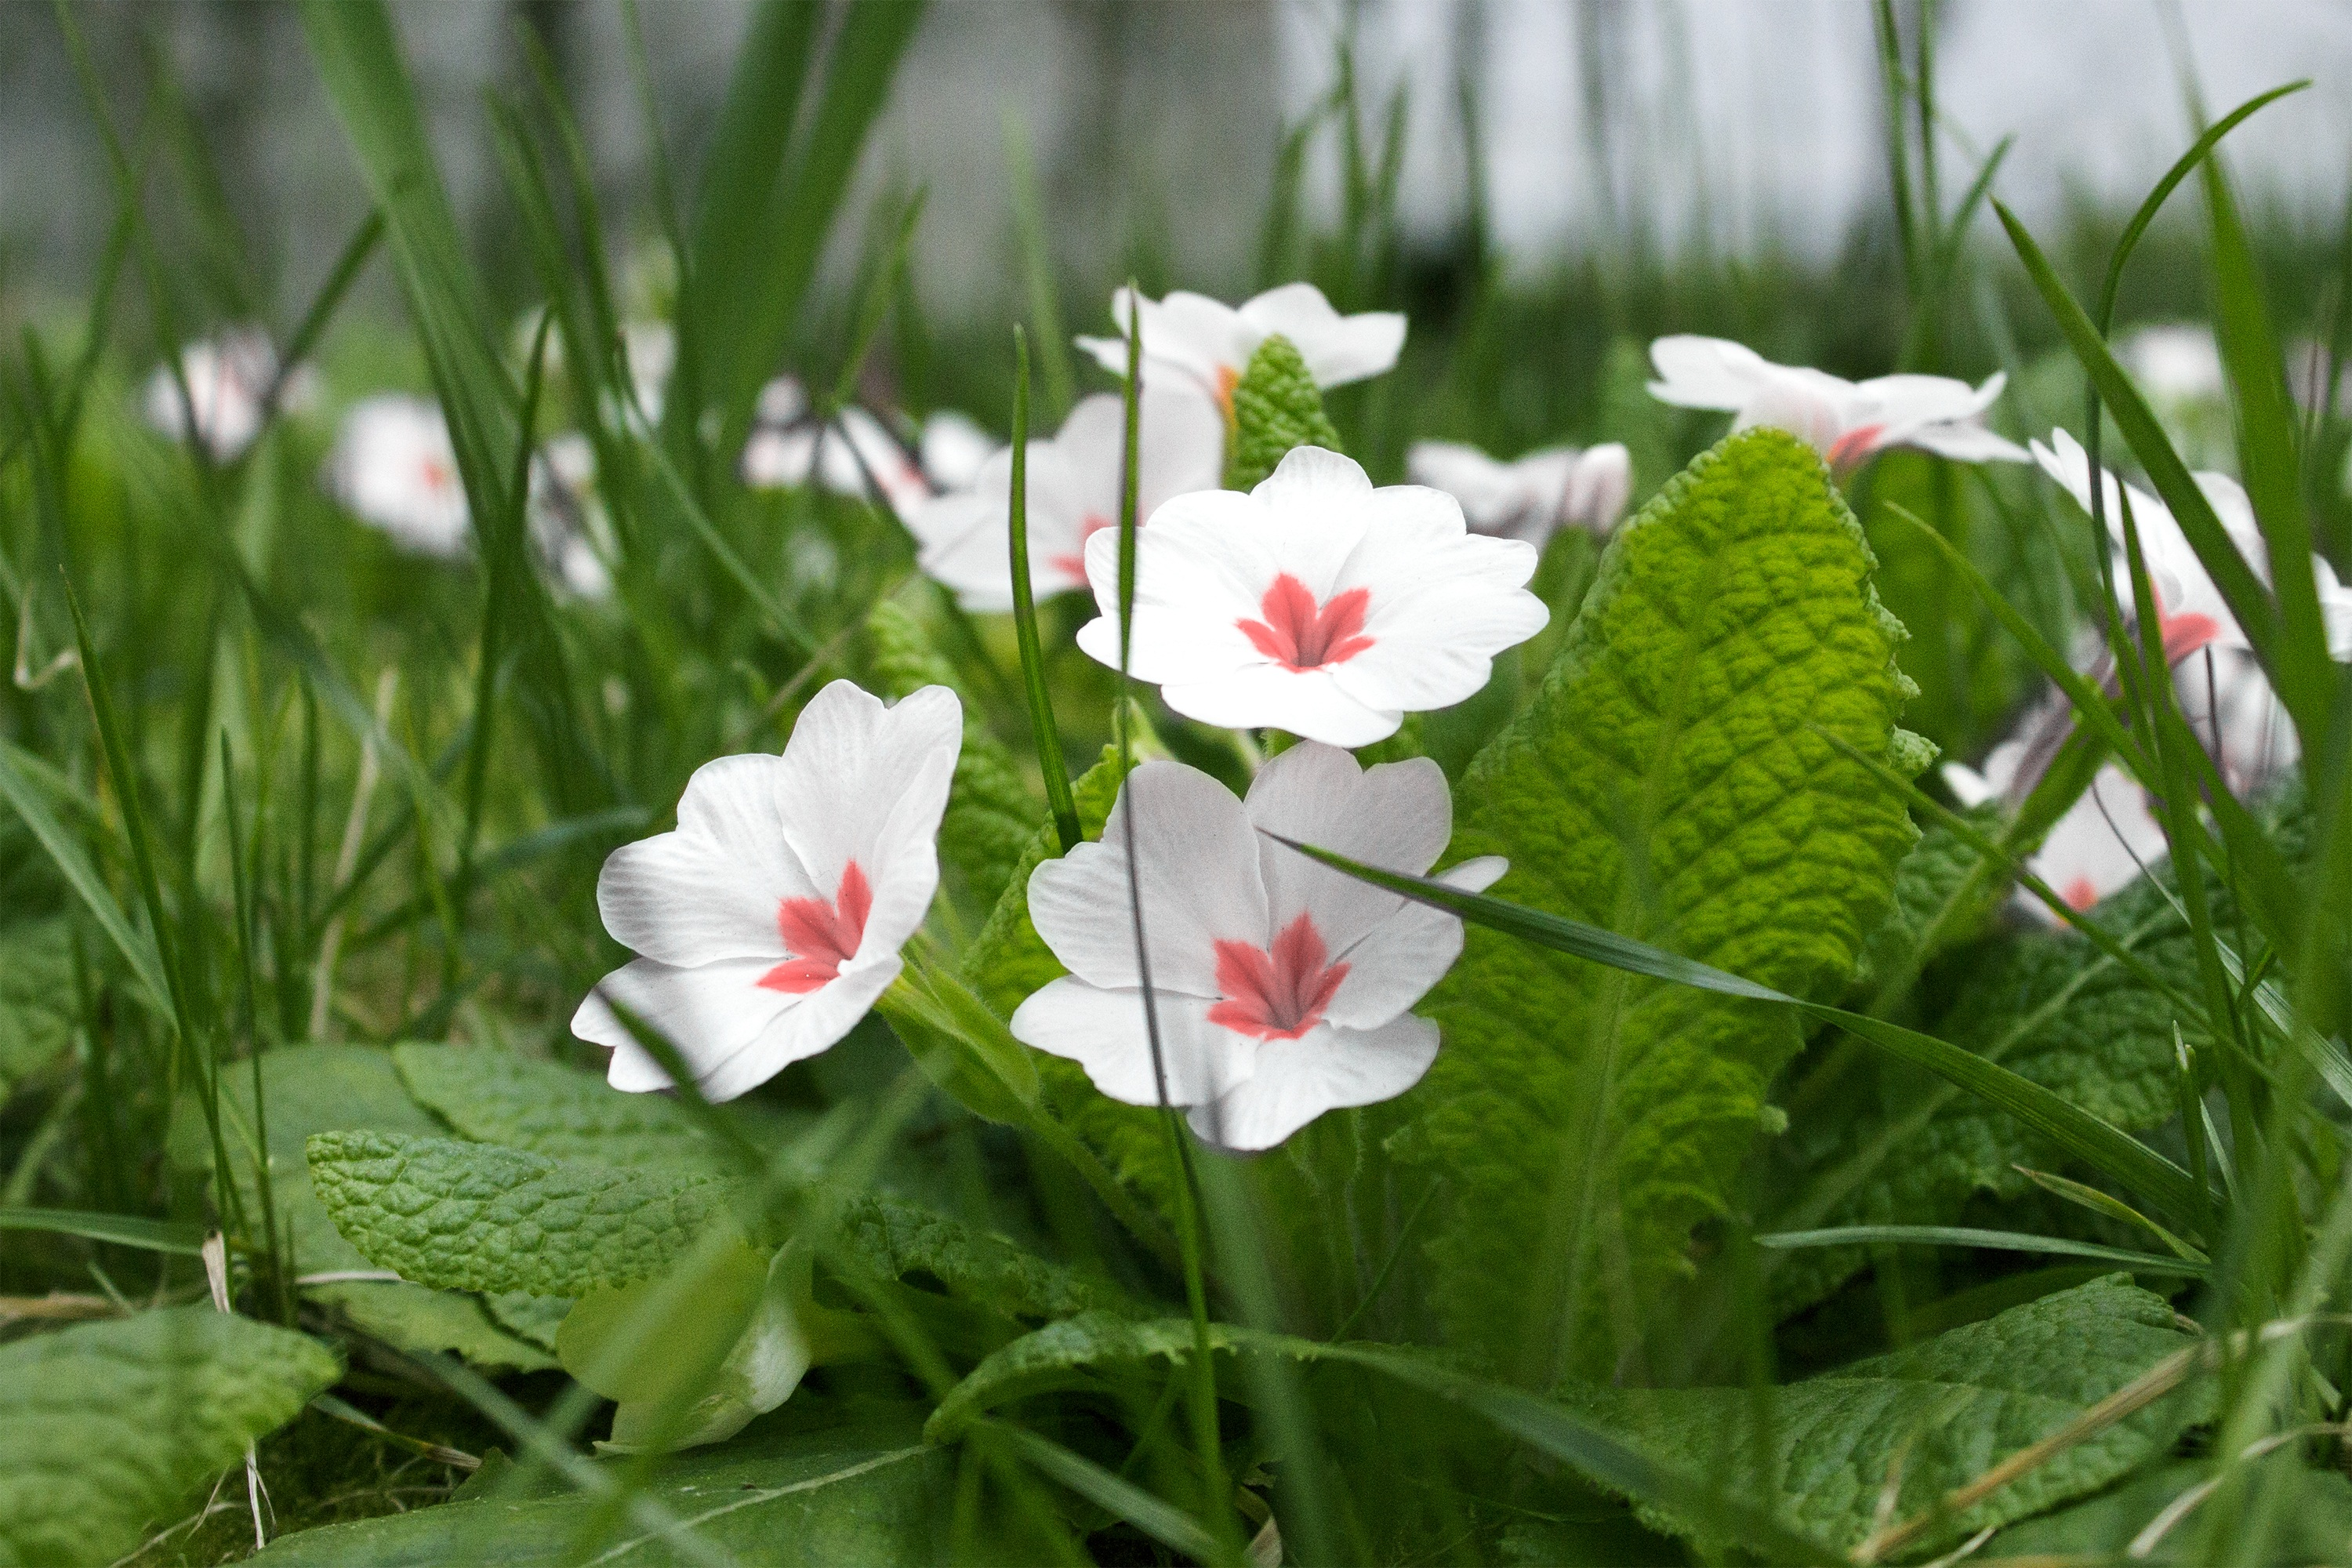 Cute White Flowers In Green Grass Free Image